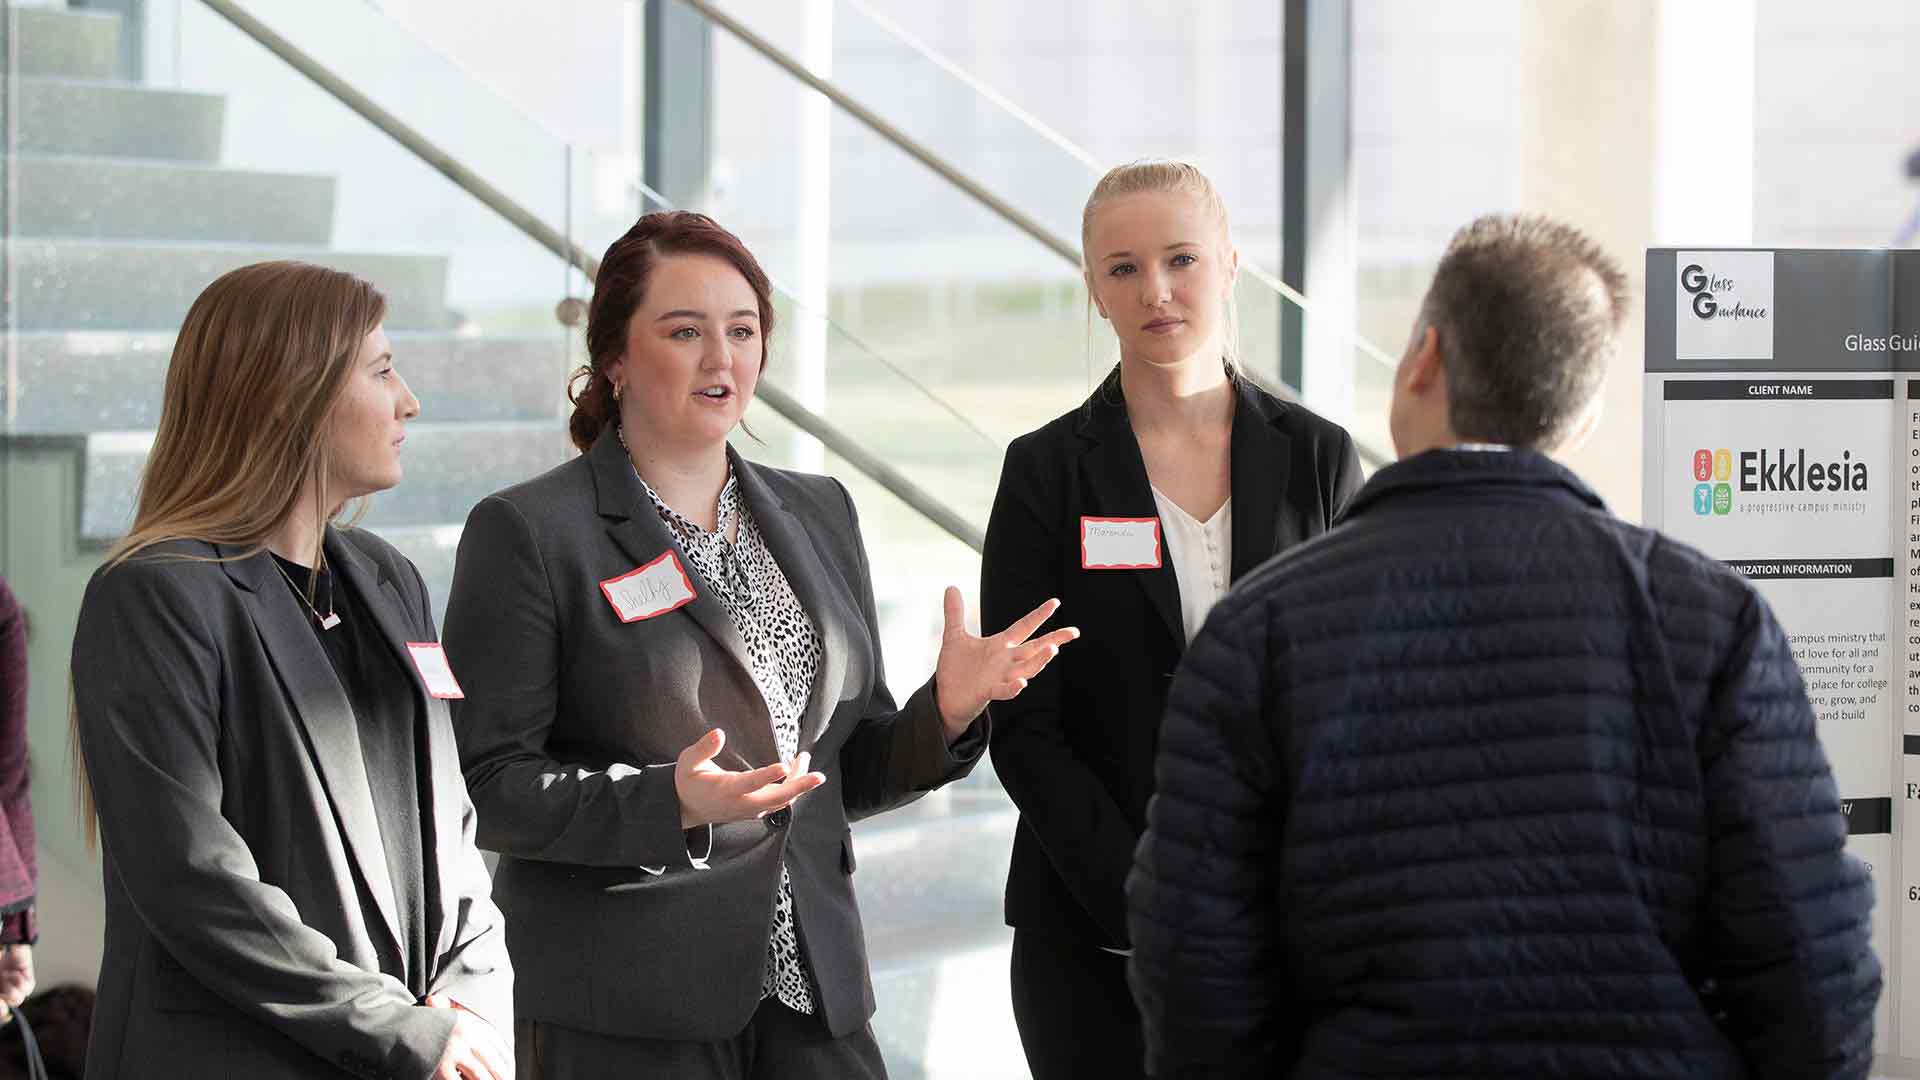 Management students presenting at symposium in Glass Hall atrium